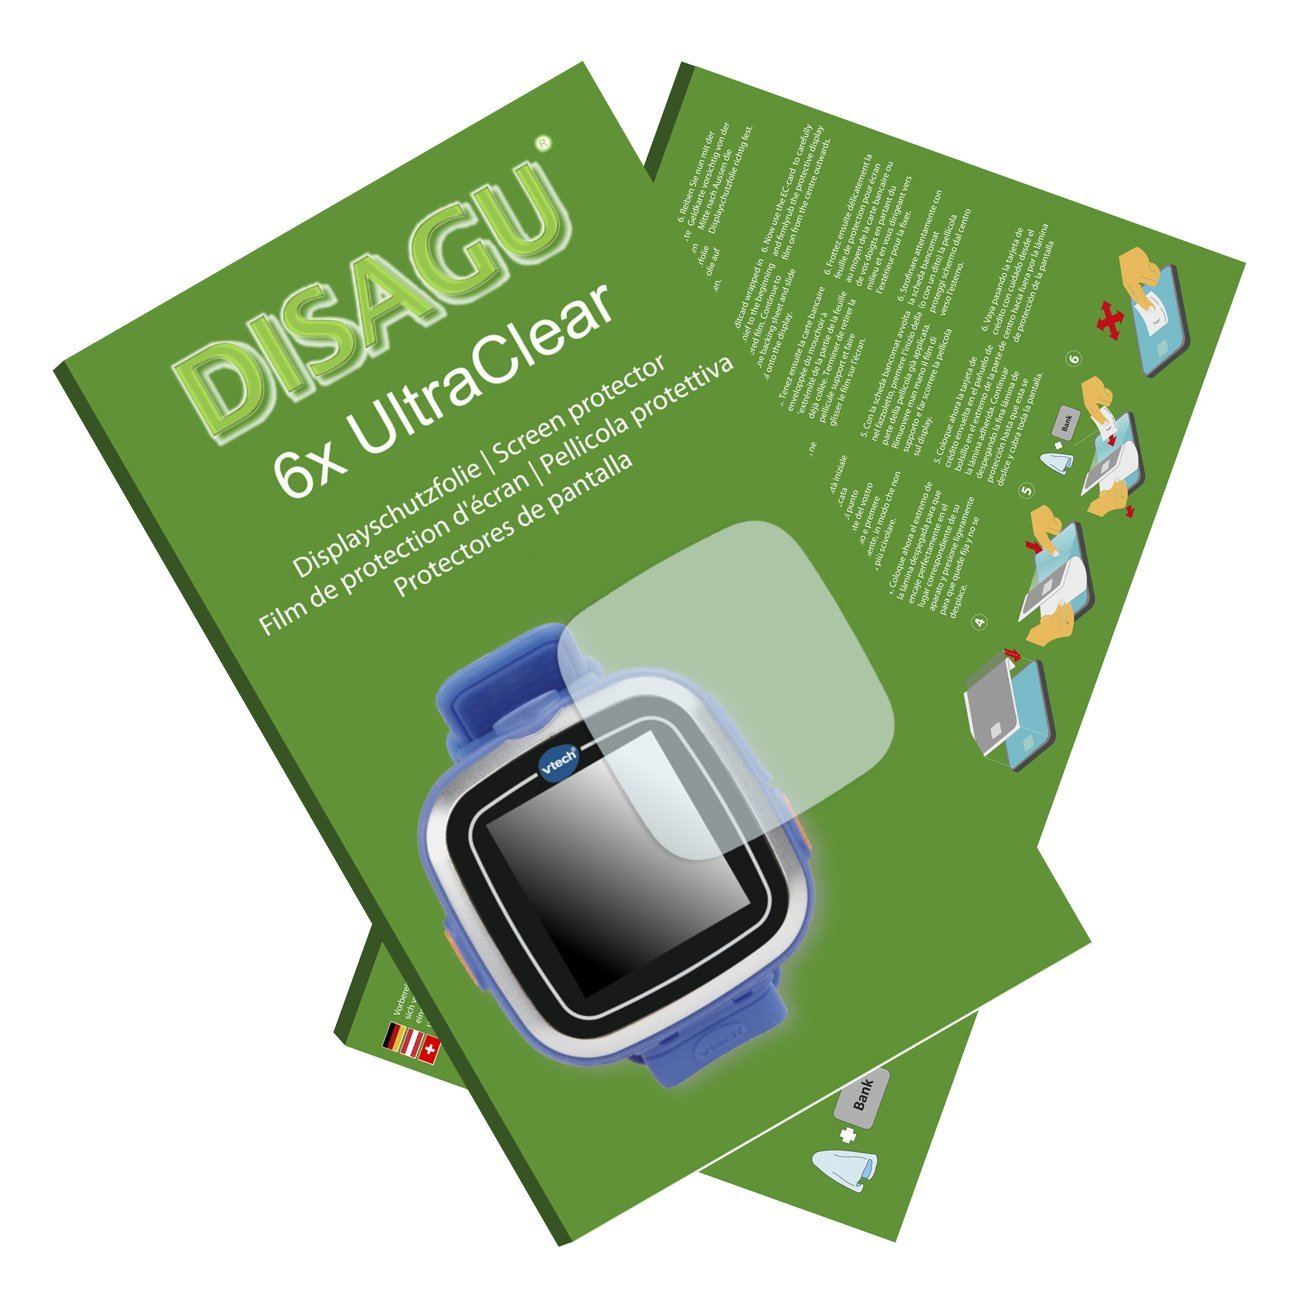 DISAGU 6x Ultra Clear Screen Protector for Vtech Kidizoom Smart Watch 1